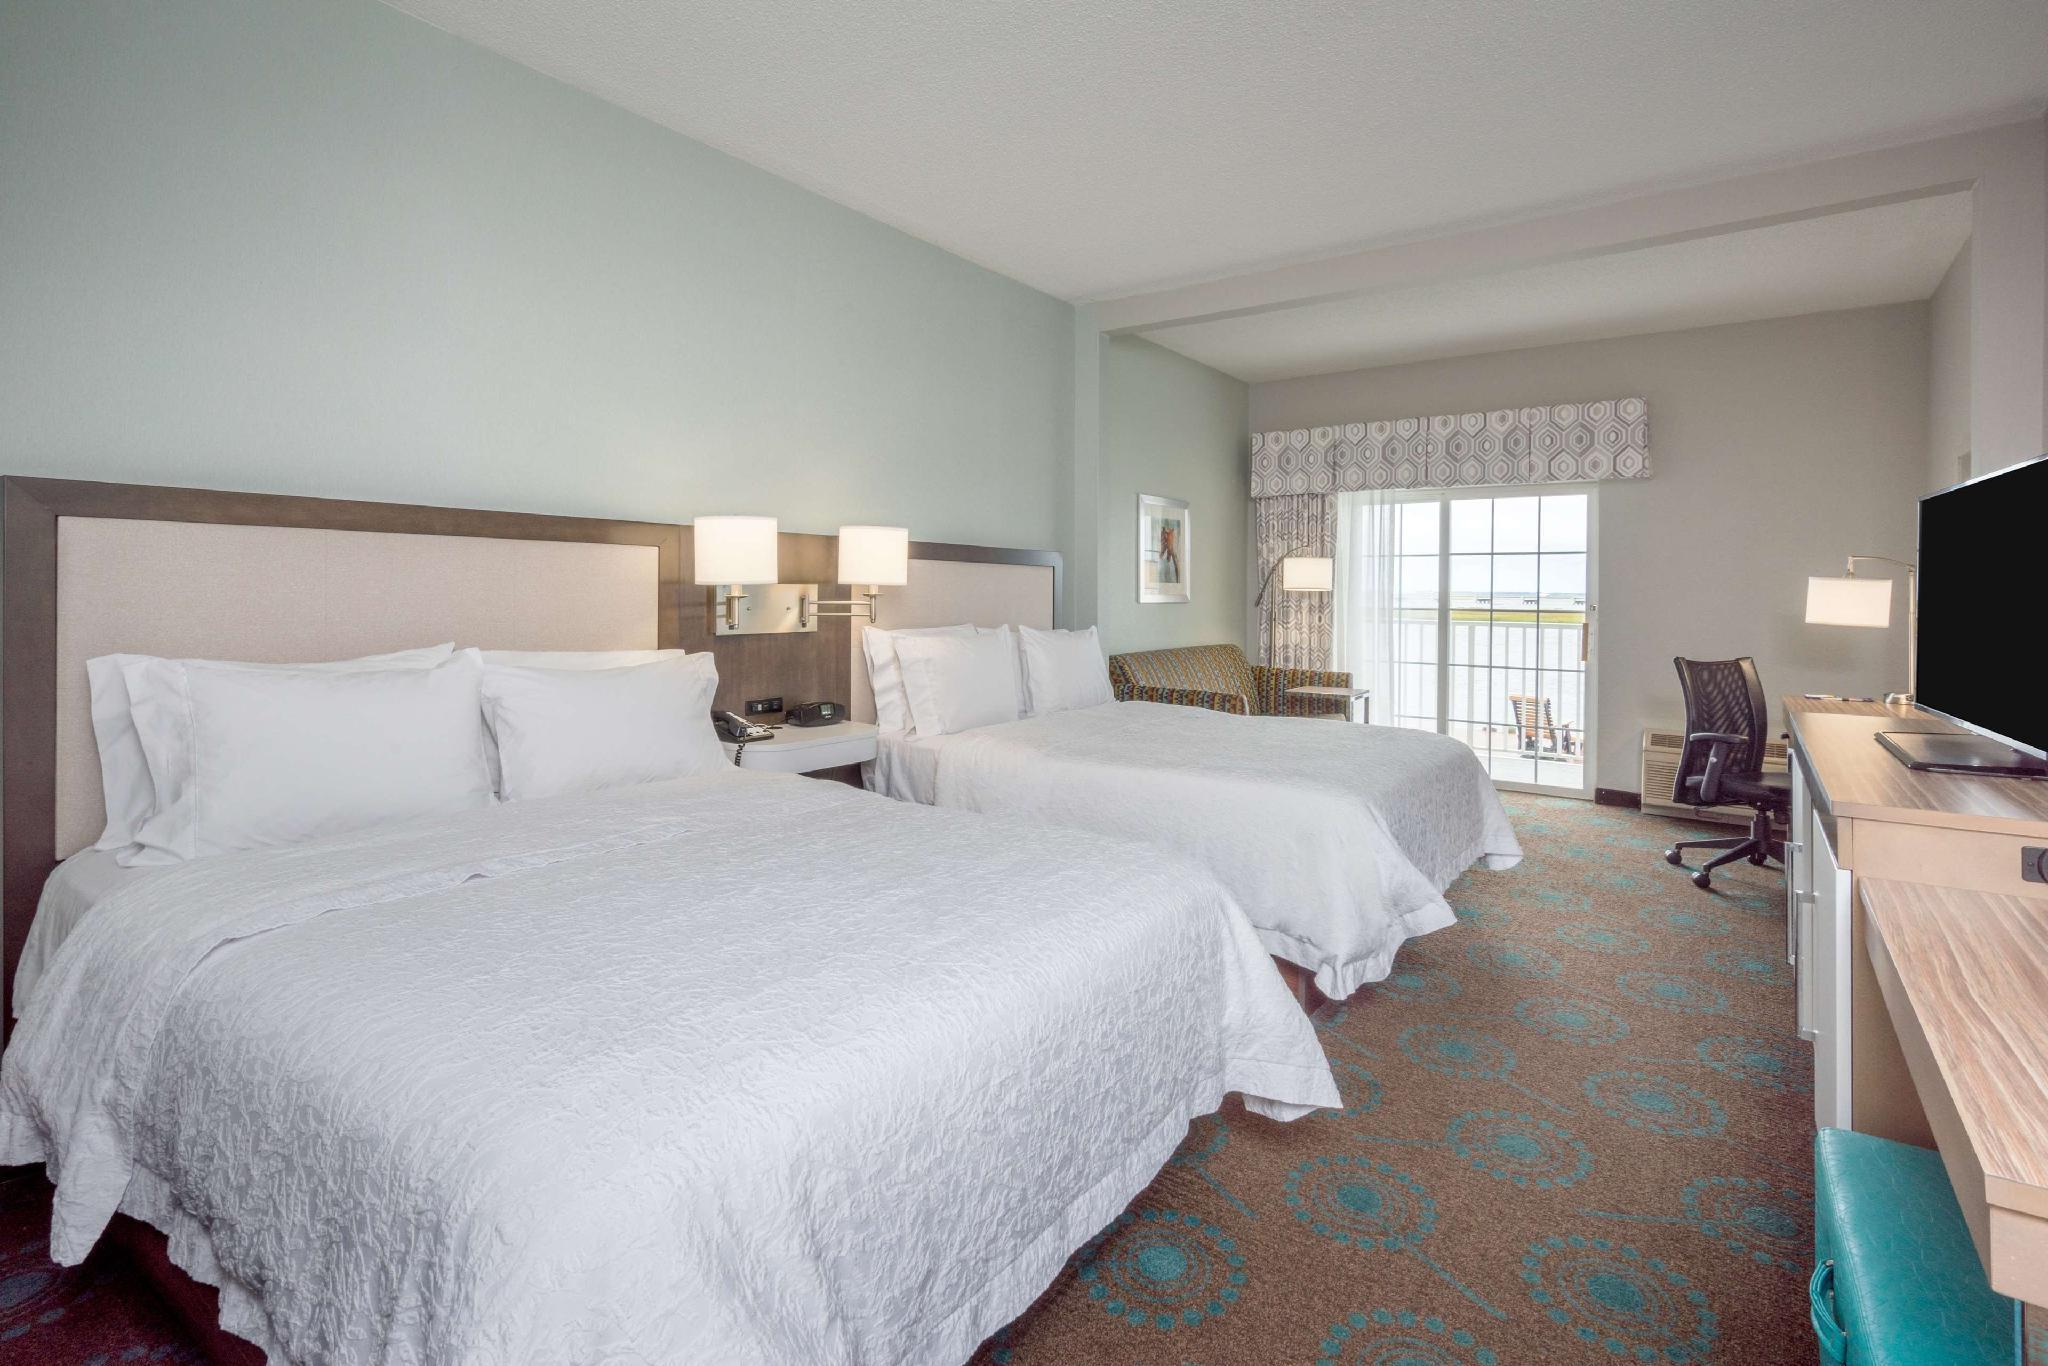 2 Queen Beds W/ Balcony Waterfront Non-smoking